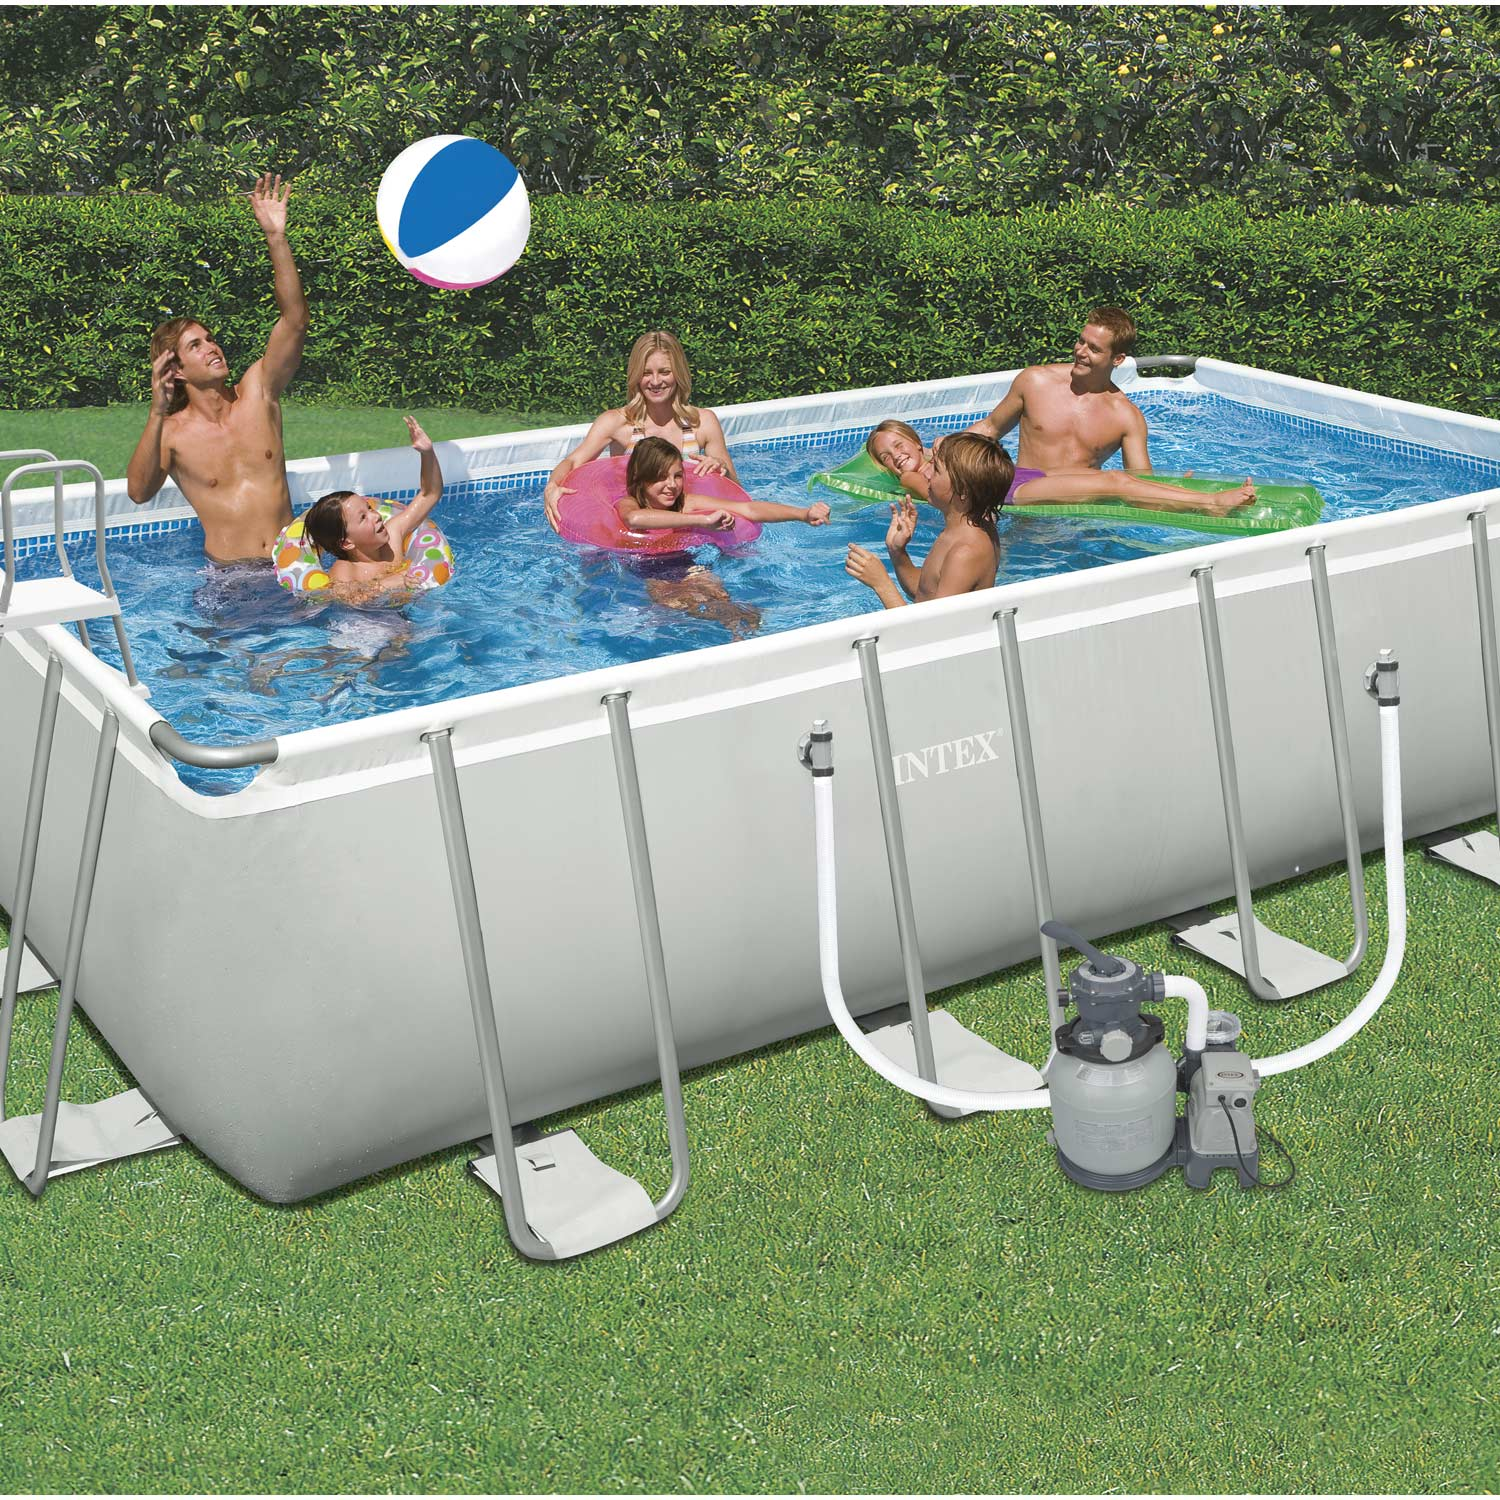 Piscine hors sol autoportante tubulaire intex l x l for Piscine gonflable rectangulaire